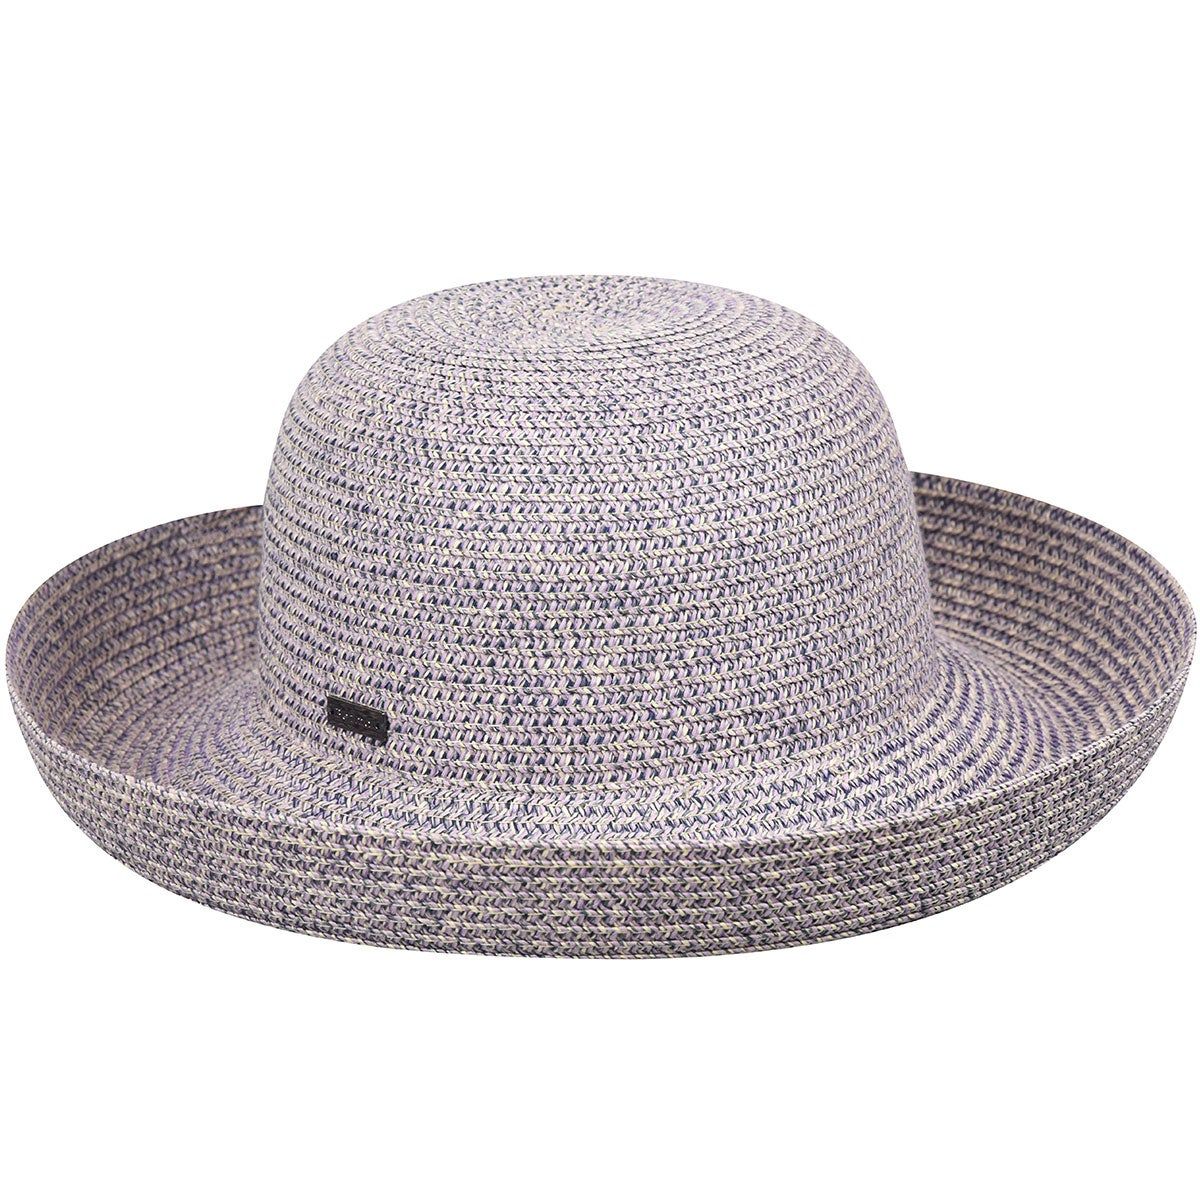 Betmar Classic Roll Up Hat in Lavender,Charcoal